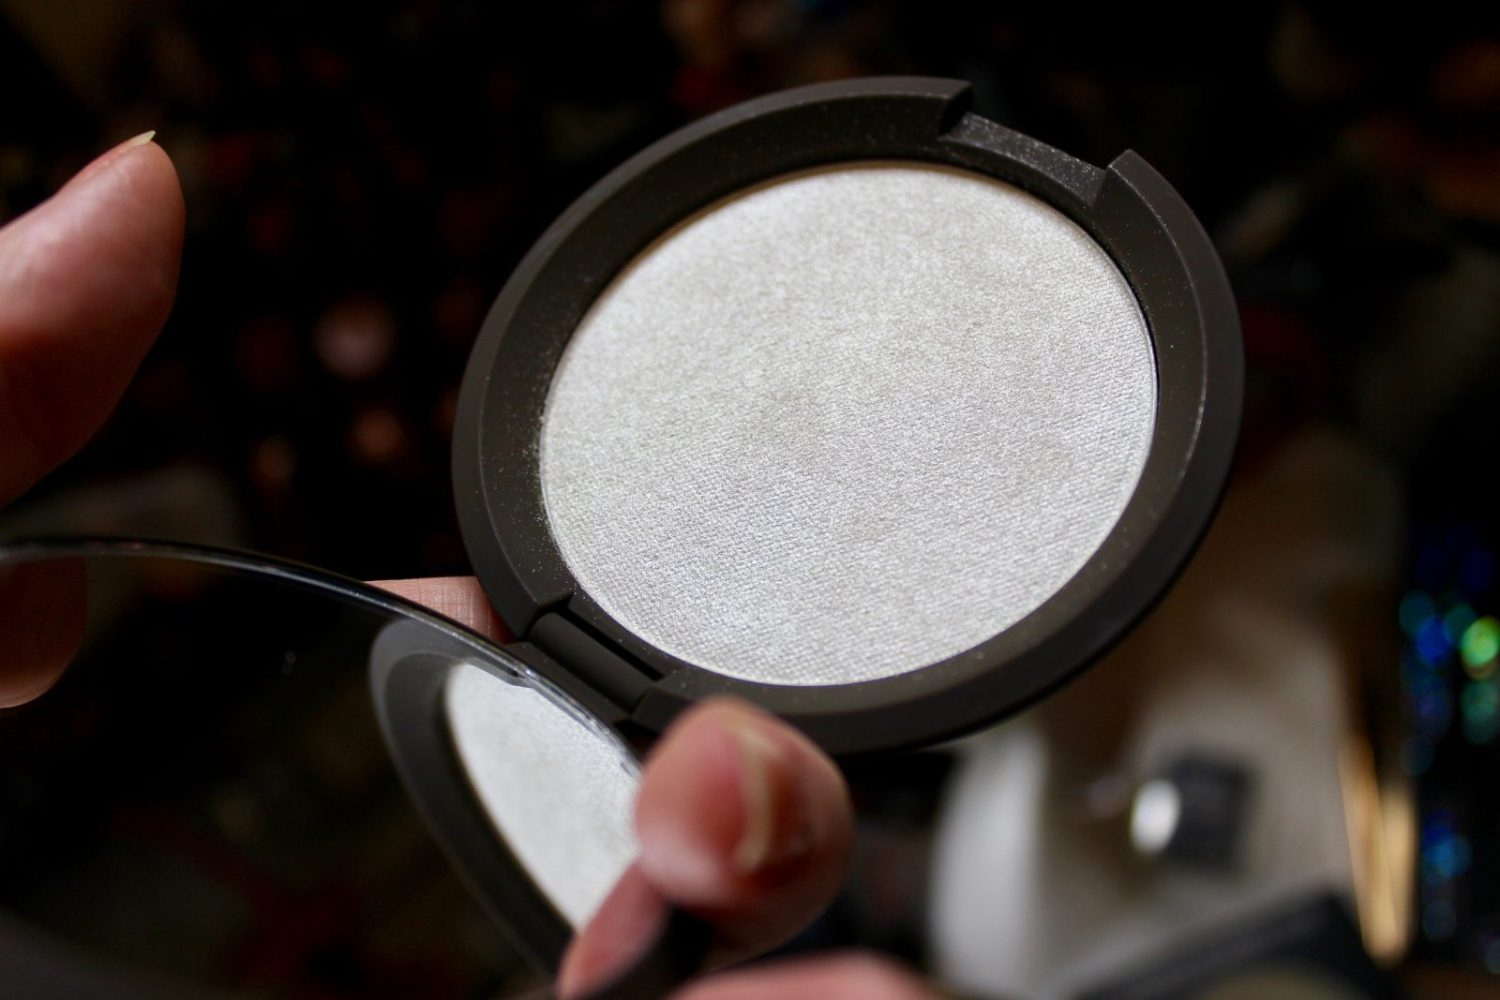 becca pearl highlighter